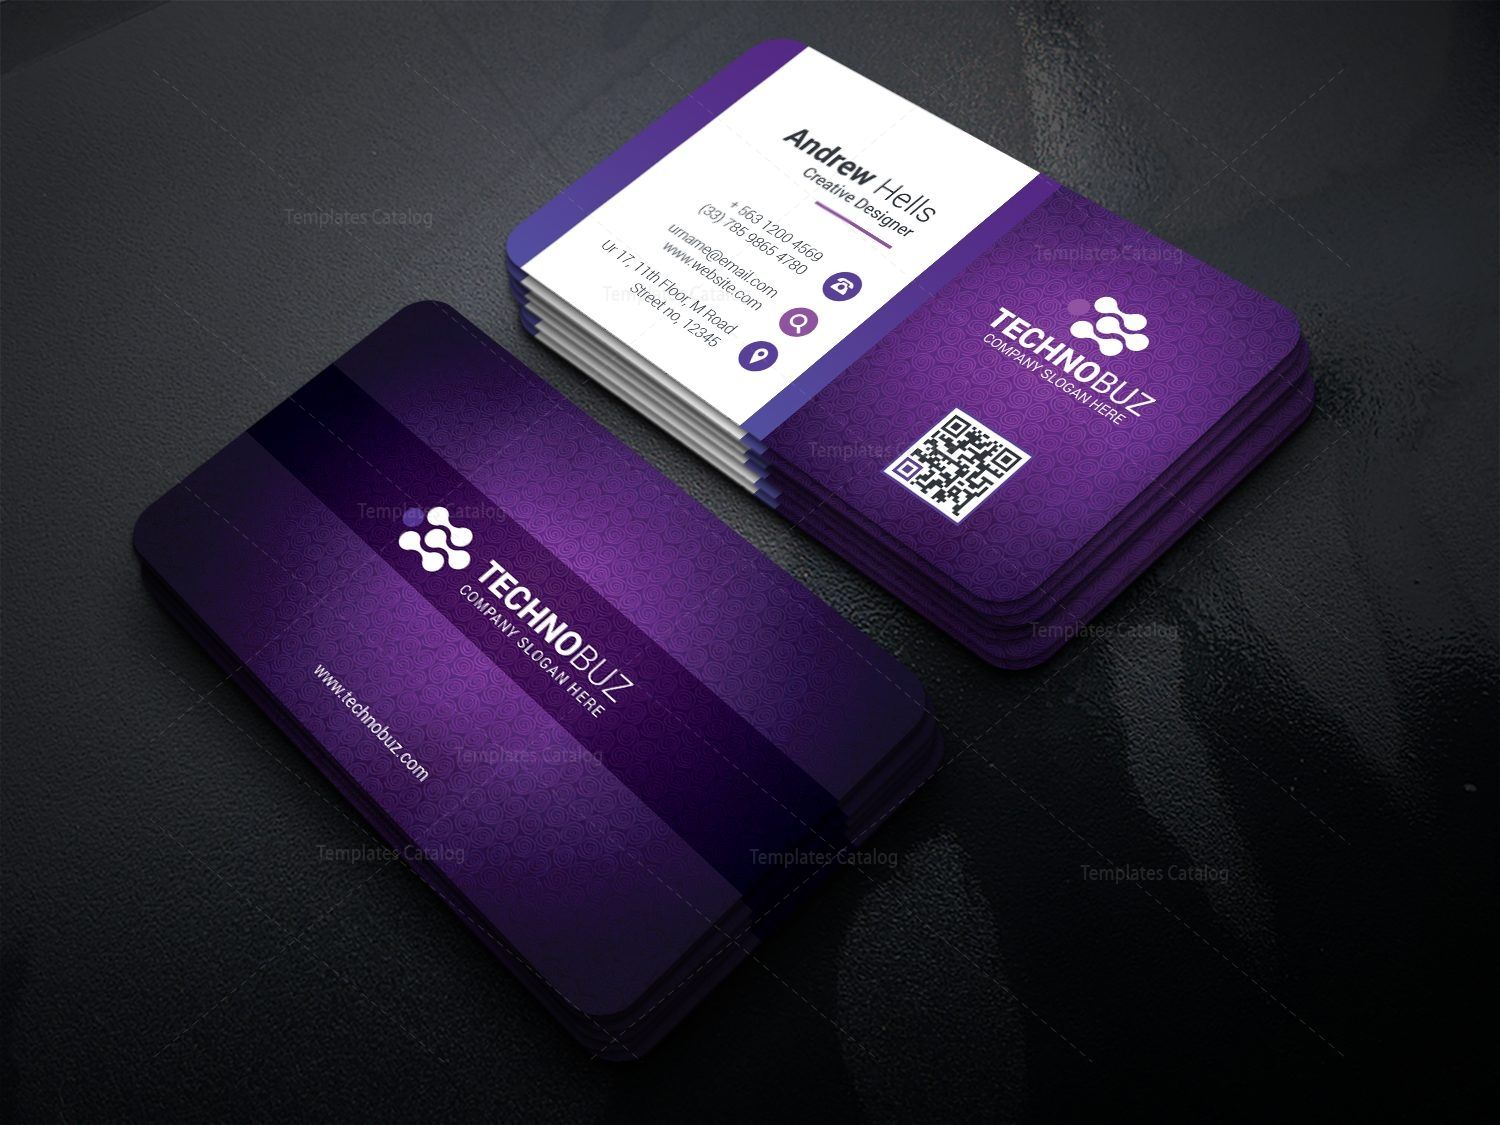 Purple Modern Business Card Template 000766 Template Catalog Modern Business Cards Business Card Template Stylish Business Cards